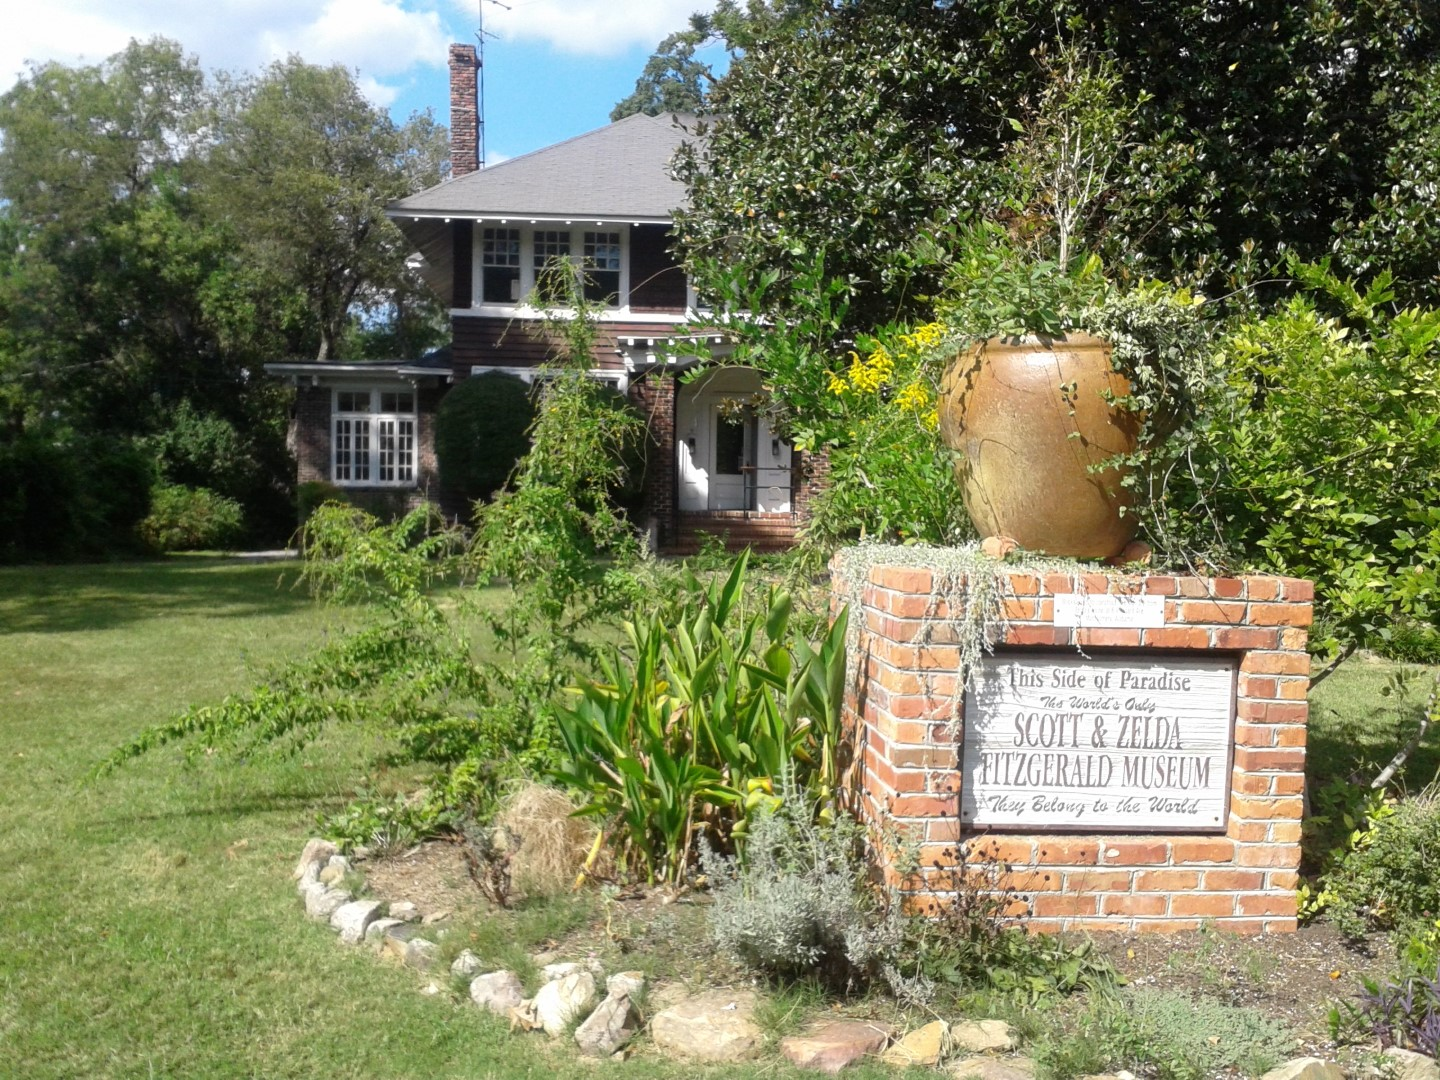 Front of the Fitzgerald Museum and sign